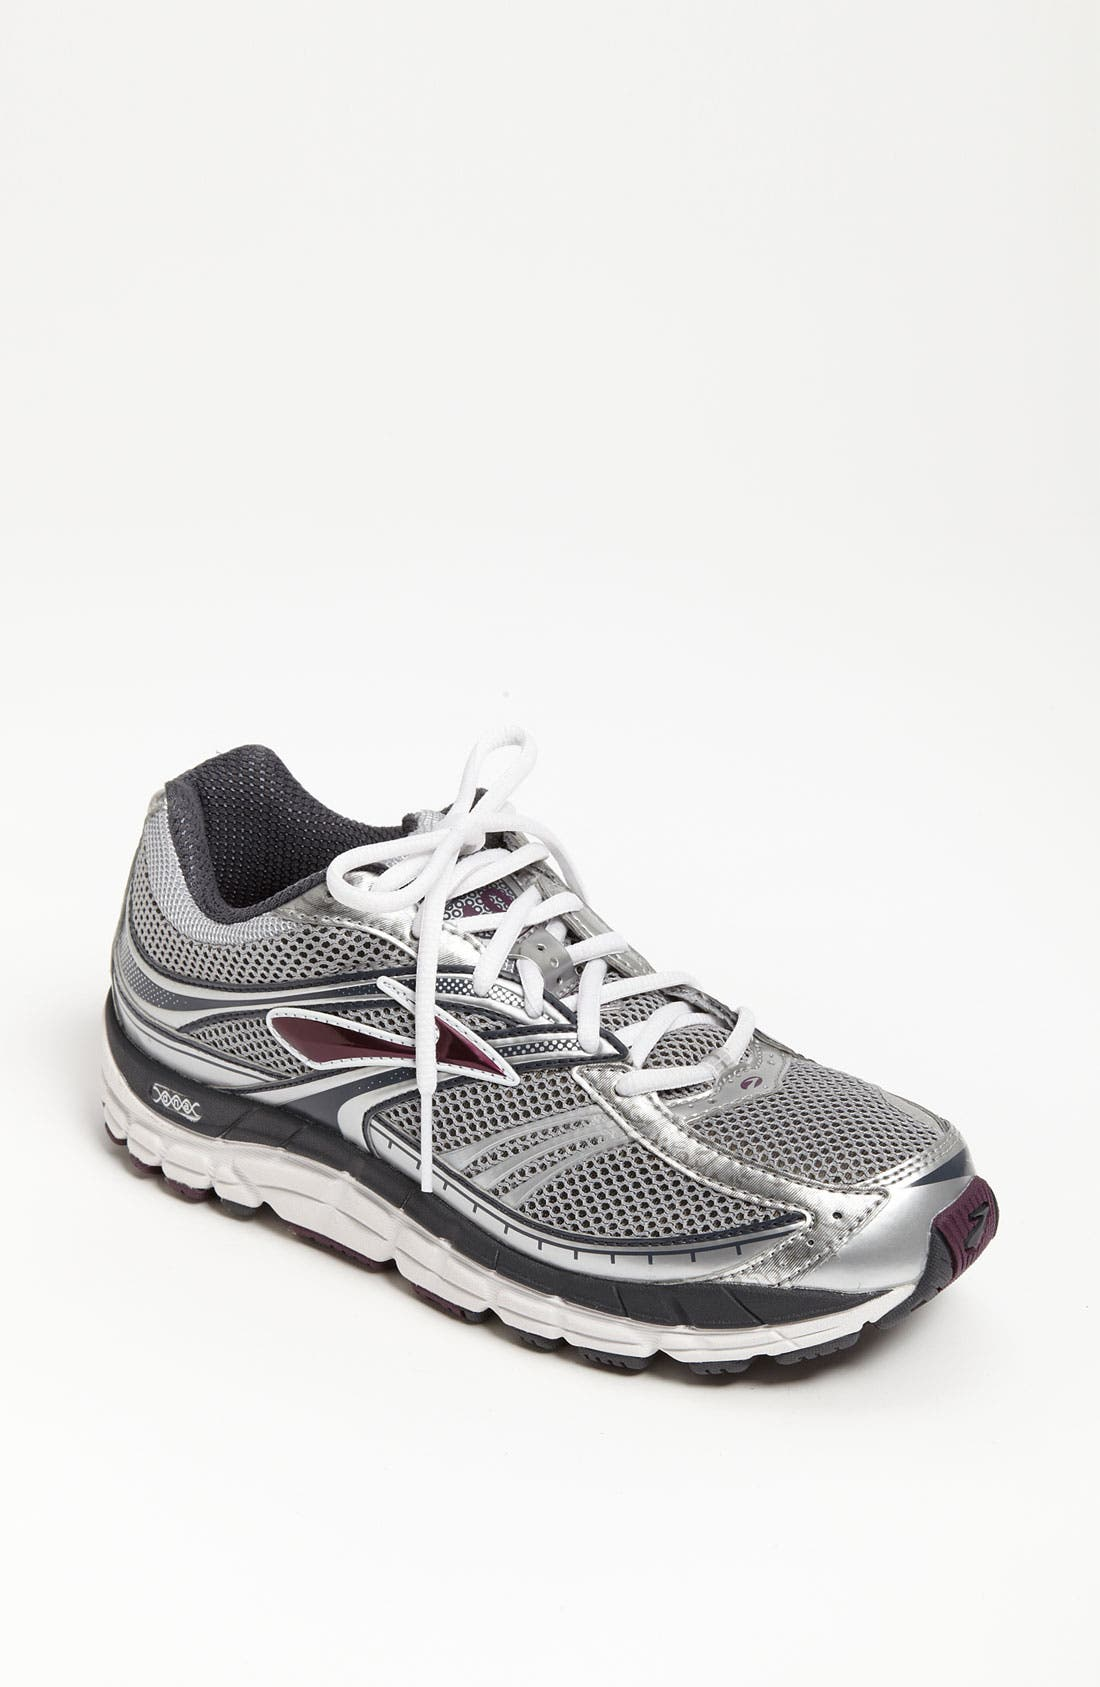 Main Image - Brooks 'Addiction 10' Running Shoe (Women)